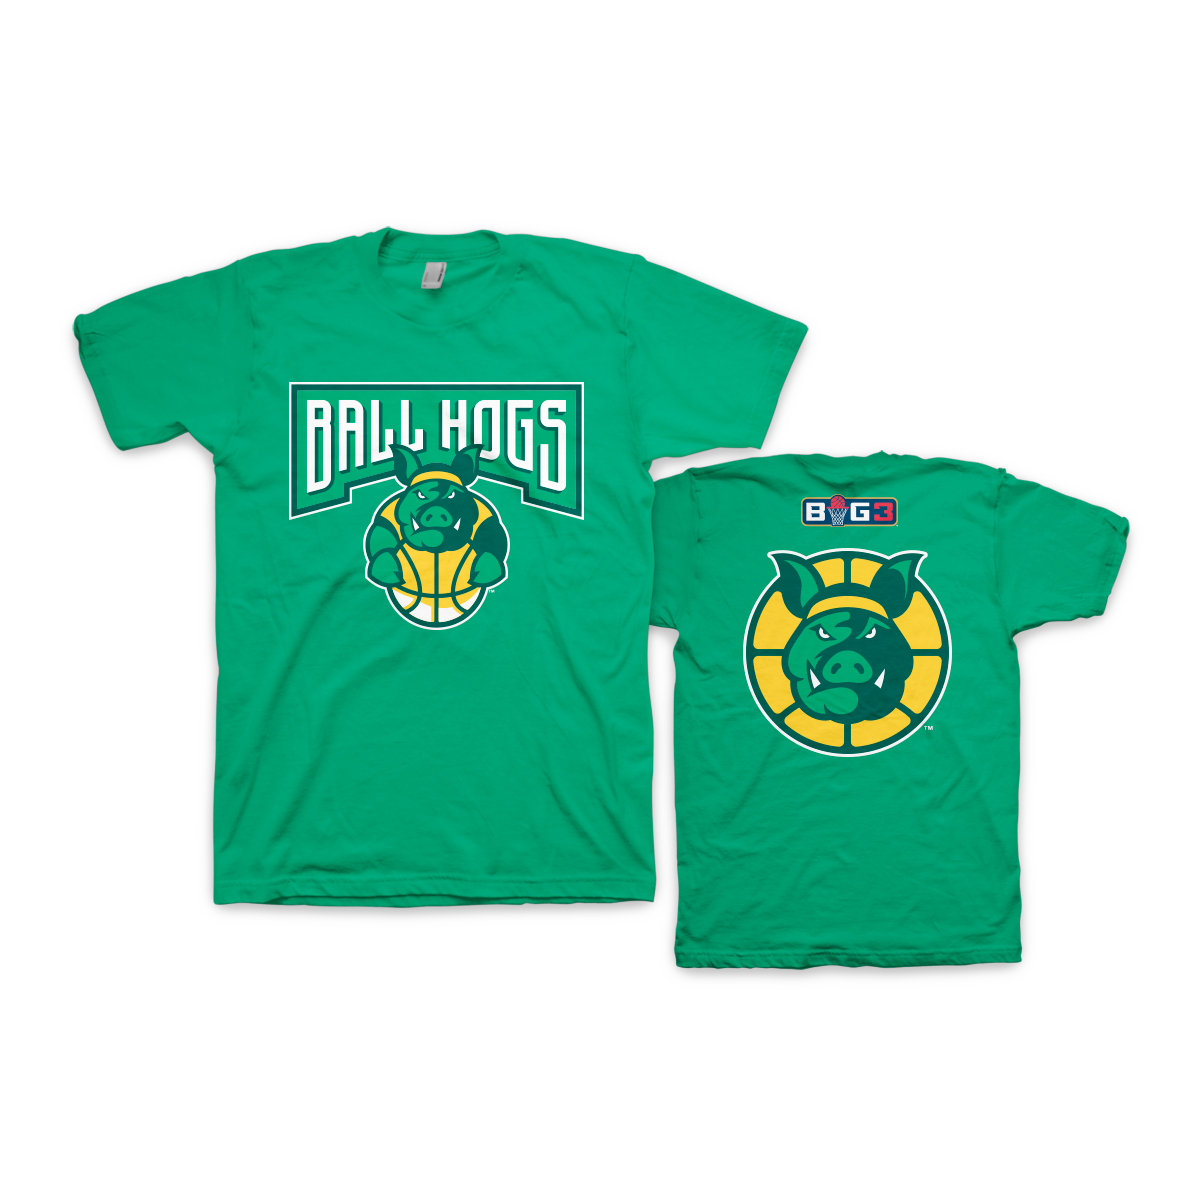 Ball Hogs - Webstore Exclusive 2019 Season T-Shirt